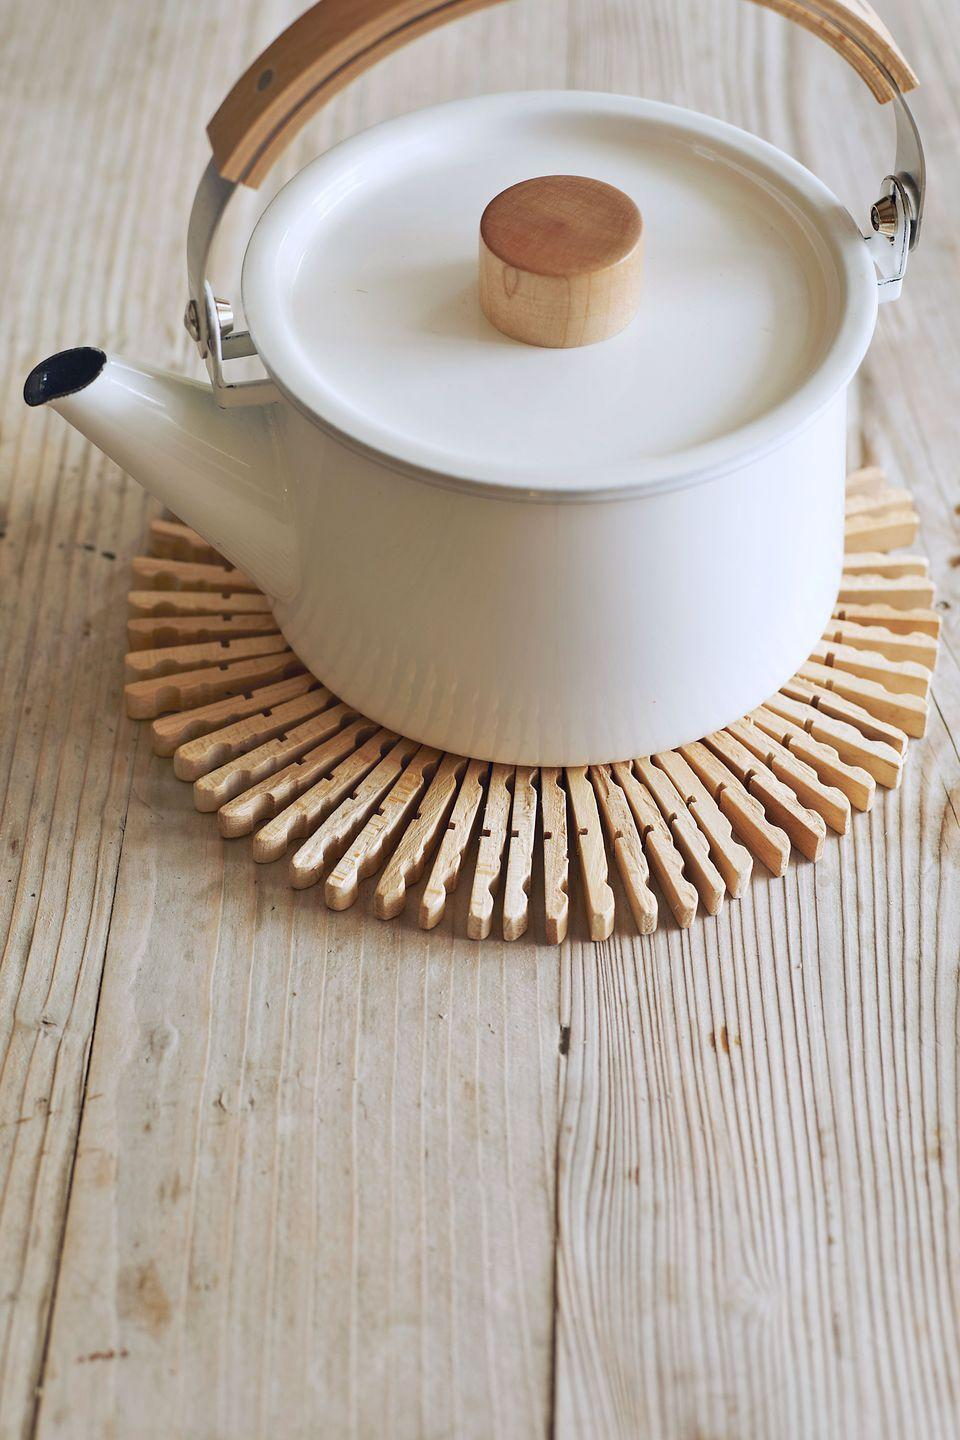 """<p>Whip up a Scandinavian-style table protector from–get this–wooden clothespins and <a href=""""https://www.amazon.com/Paddle-Wire-Gauge-Ounces-Pkg-Bright/dp/B004BQ1HSS?tag=syn-yahoo-20&ascsubtag=%5Bartid%7C10050.g.645%5Bsrc%7Cyahoo-us"""" rel=""""nofollow noopener"""" target=""""_blank"""" data-ylk=""""slk:floral wire"""" class=""""link rapid-noclick-resp"""">floral wire</a>. Oslo-born crafter Paul Lowe shares his easy how-to in <em><a href=""""http://www.amazon.com/Sweet-Paul-Eat-Make-Charming/dp/0544133331?tag=syn-yahoo-20&ascsubtag=%5Bartid%7C10050.g.645%5Bsrc%7Cyahoo-us"""" rel=""""nofollow noopener"""" target=""""_blank"""" data-ylk=""""slk:Sweet Paul Eat and Make"""" class=""""link rapid-noclick-resp"""">Sweet Paul Eat and Make</a></em>. Simply disassemble <a href=""""https://www.amazon.com/Natural-Clothespins-Craft-Boutique-Scrapbooking/dp/B011P8KEQU/?tag=syn-yahoo-20&ascsubtag=%5Bartid%7C10050.g.645%5Bsrc%7Cyahoo-us"""" rel=""""nofollow noopener"""" target=""""_blank"""" data-ylk=""""slk:40 clothespins,"""" class=""""link rapid-noclick-resp"""">40 clothespins,</a> lay them flat side down, and drill a hole in each, about ½ inch from the tapered end. Thread the pins onto the wire with the double-notched sides facing right, as shown. Then, pull the wire into a circle and twist the ends to secure. You'll be done before the kettle boils.</p><p><strong><a class=""""link rapid-noclick-resp"""" href=""""https://www.amazon.com/Natural-Clothespins-Craft-Boutique-Scrapbooking/dp/B011P8KEQU/?tag=syn-yahoo-20&ascsubtag=%5Bartid%7C10050.g.645%5Bsrc%7Cyahoo-us"""" rel=""""nofollow noopener"""" target=""""_blank"""" data-ylk=""""slk:SHOP CLOTHESPINS"""">SHOP CLOTHESPINS</a></strong></p>"""